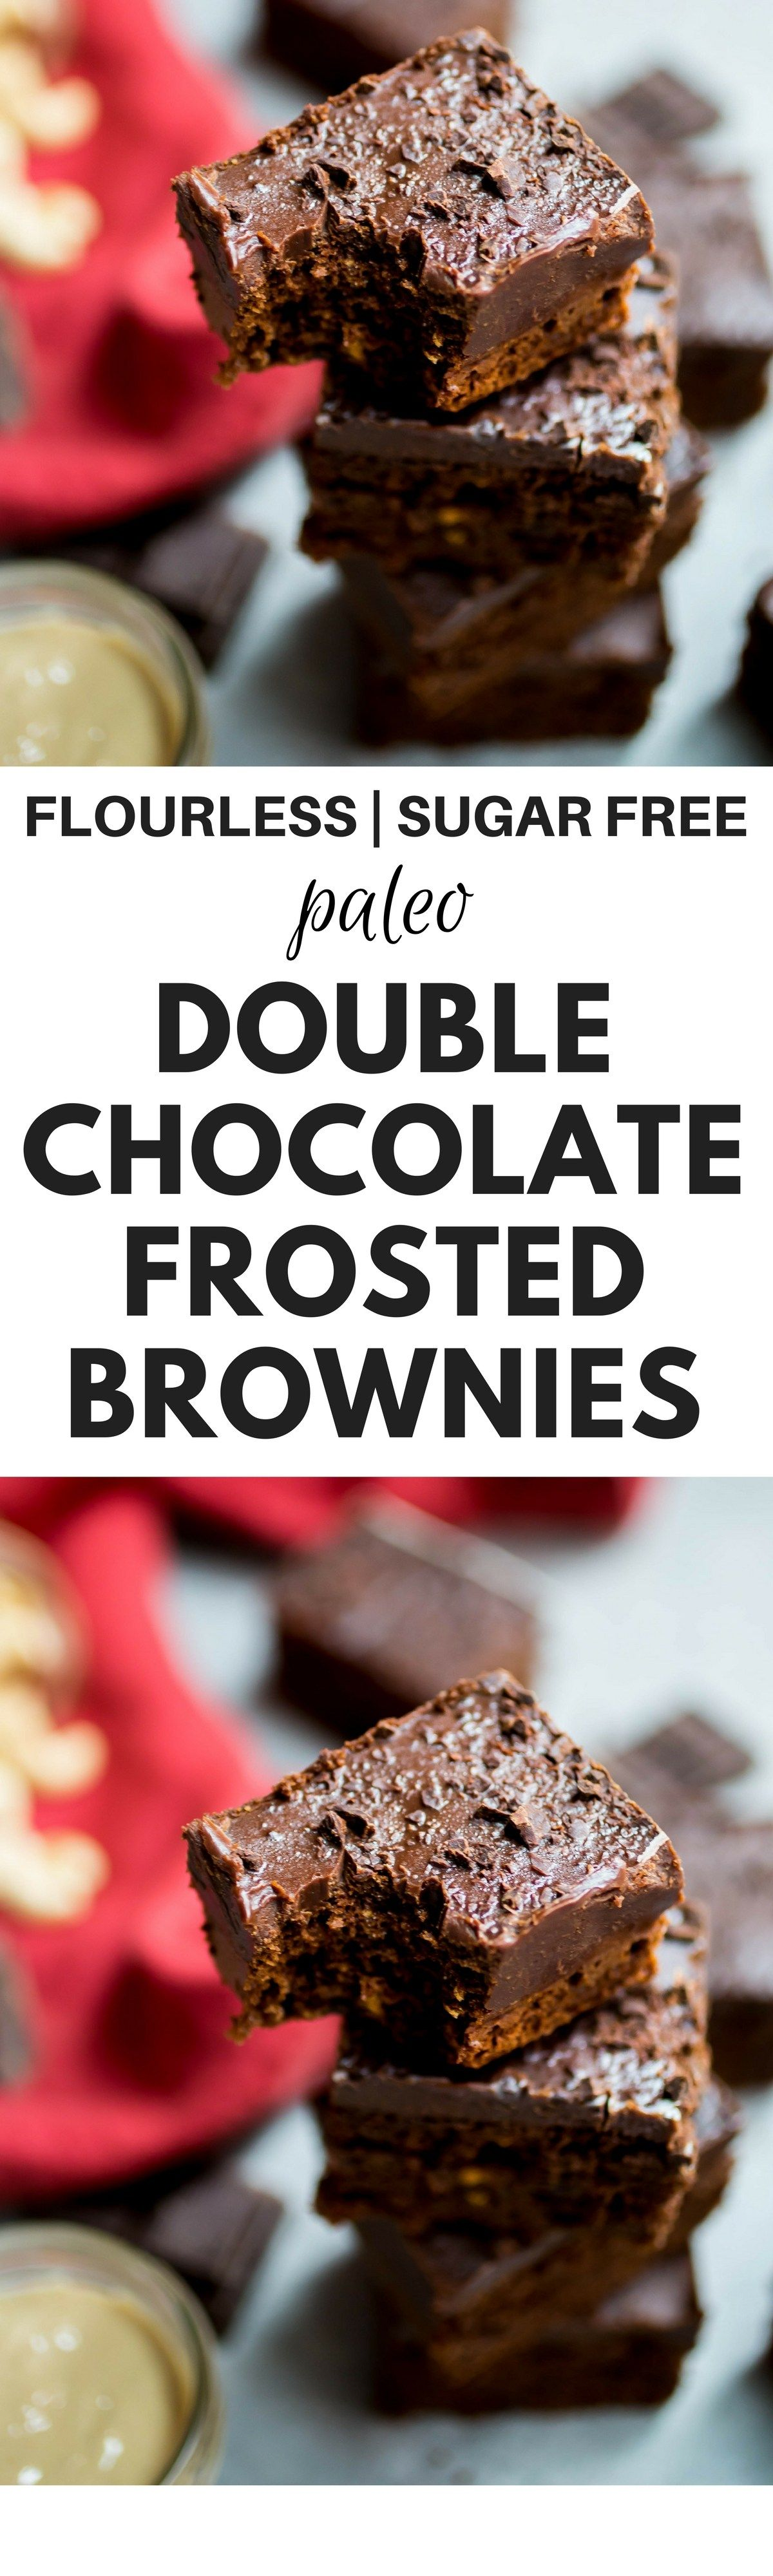 Flourless Double Chocolate Brownies Recipe Easy and quick paleo brownie recipe Healthy gluten